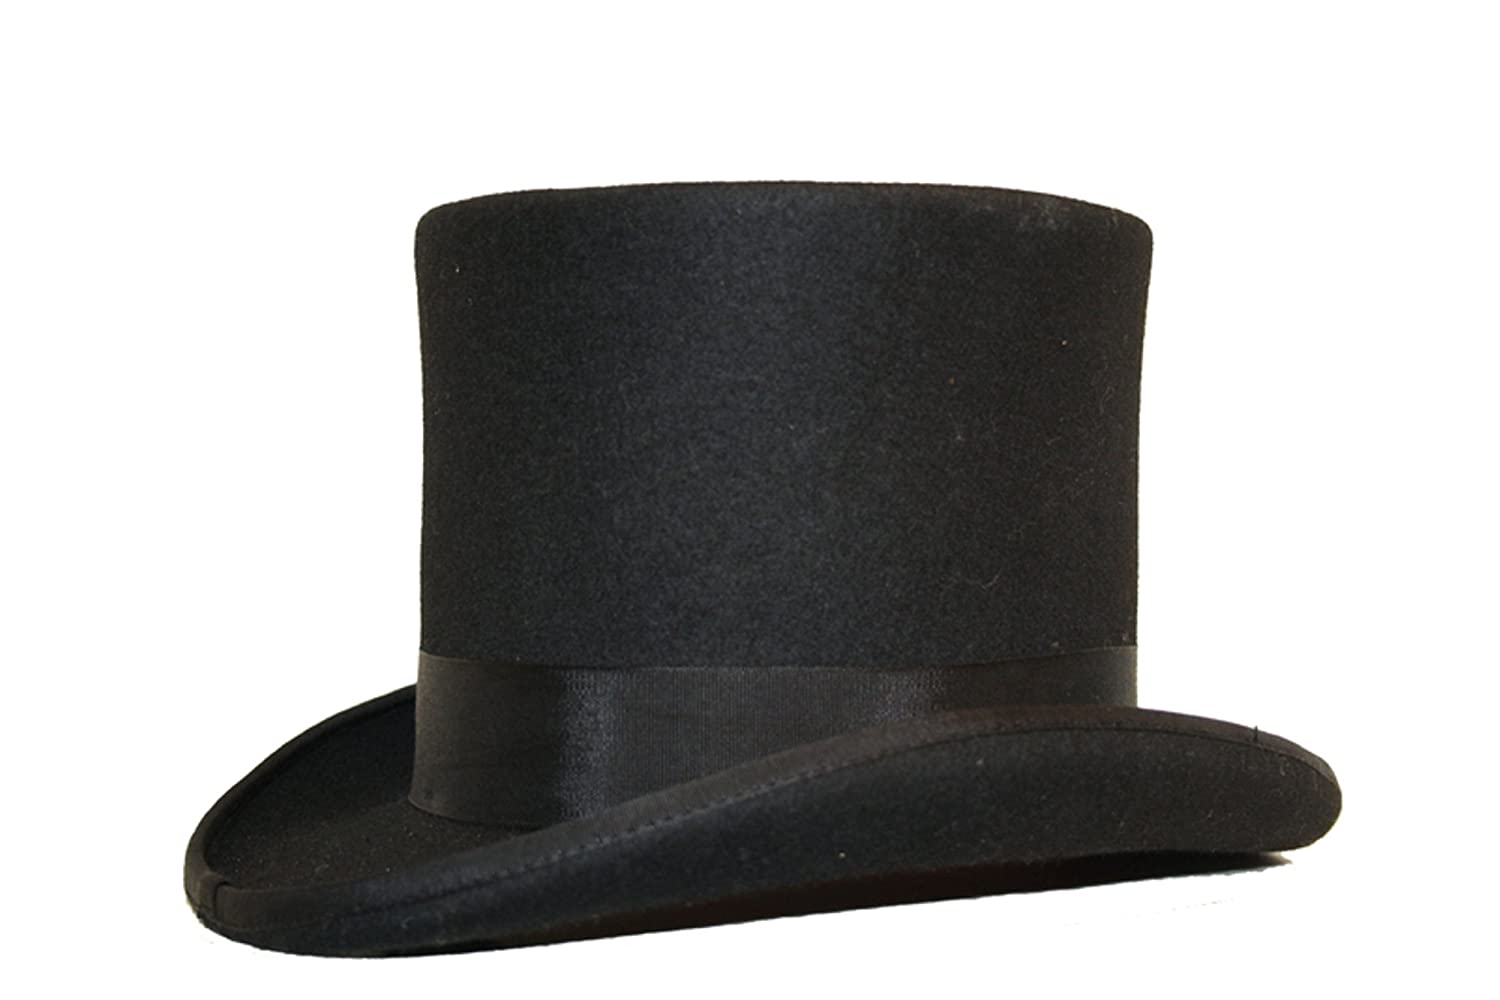 798858ad101 VIZ-UK WEAR Quality 100% Wool Hand Made Wedding Event Felt Top Hat 13  Colours Available  Amazon.co.uk  Clothing